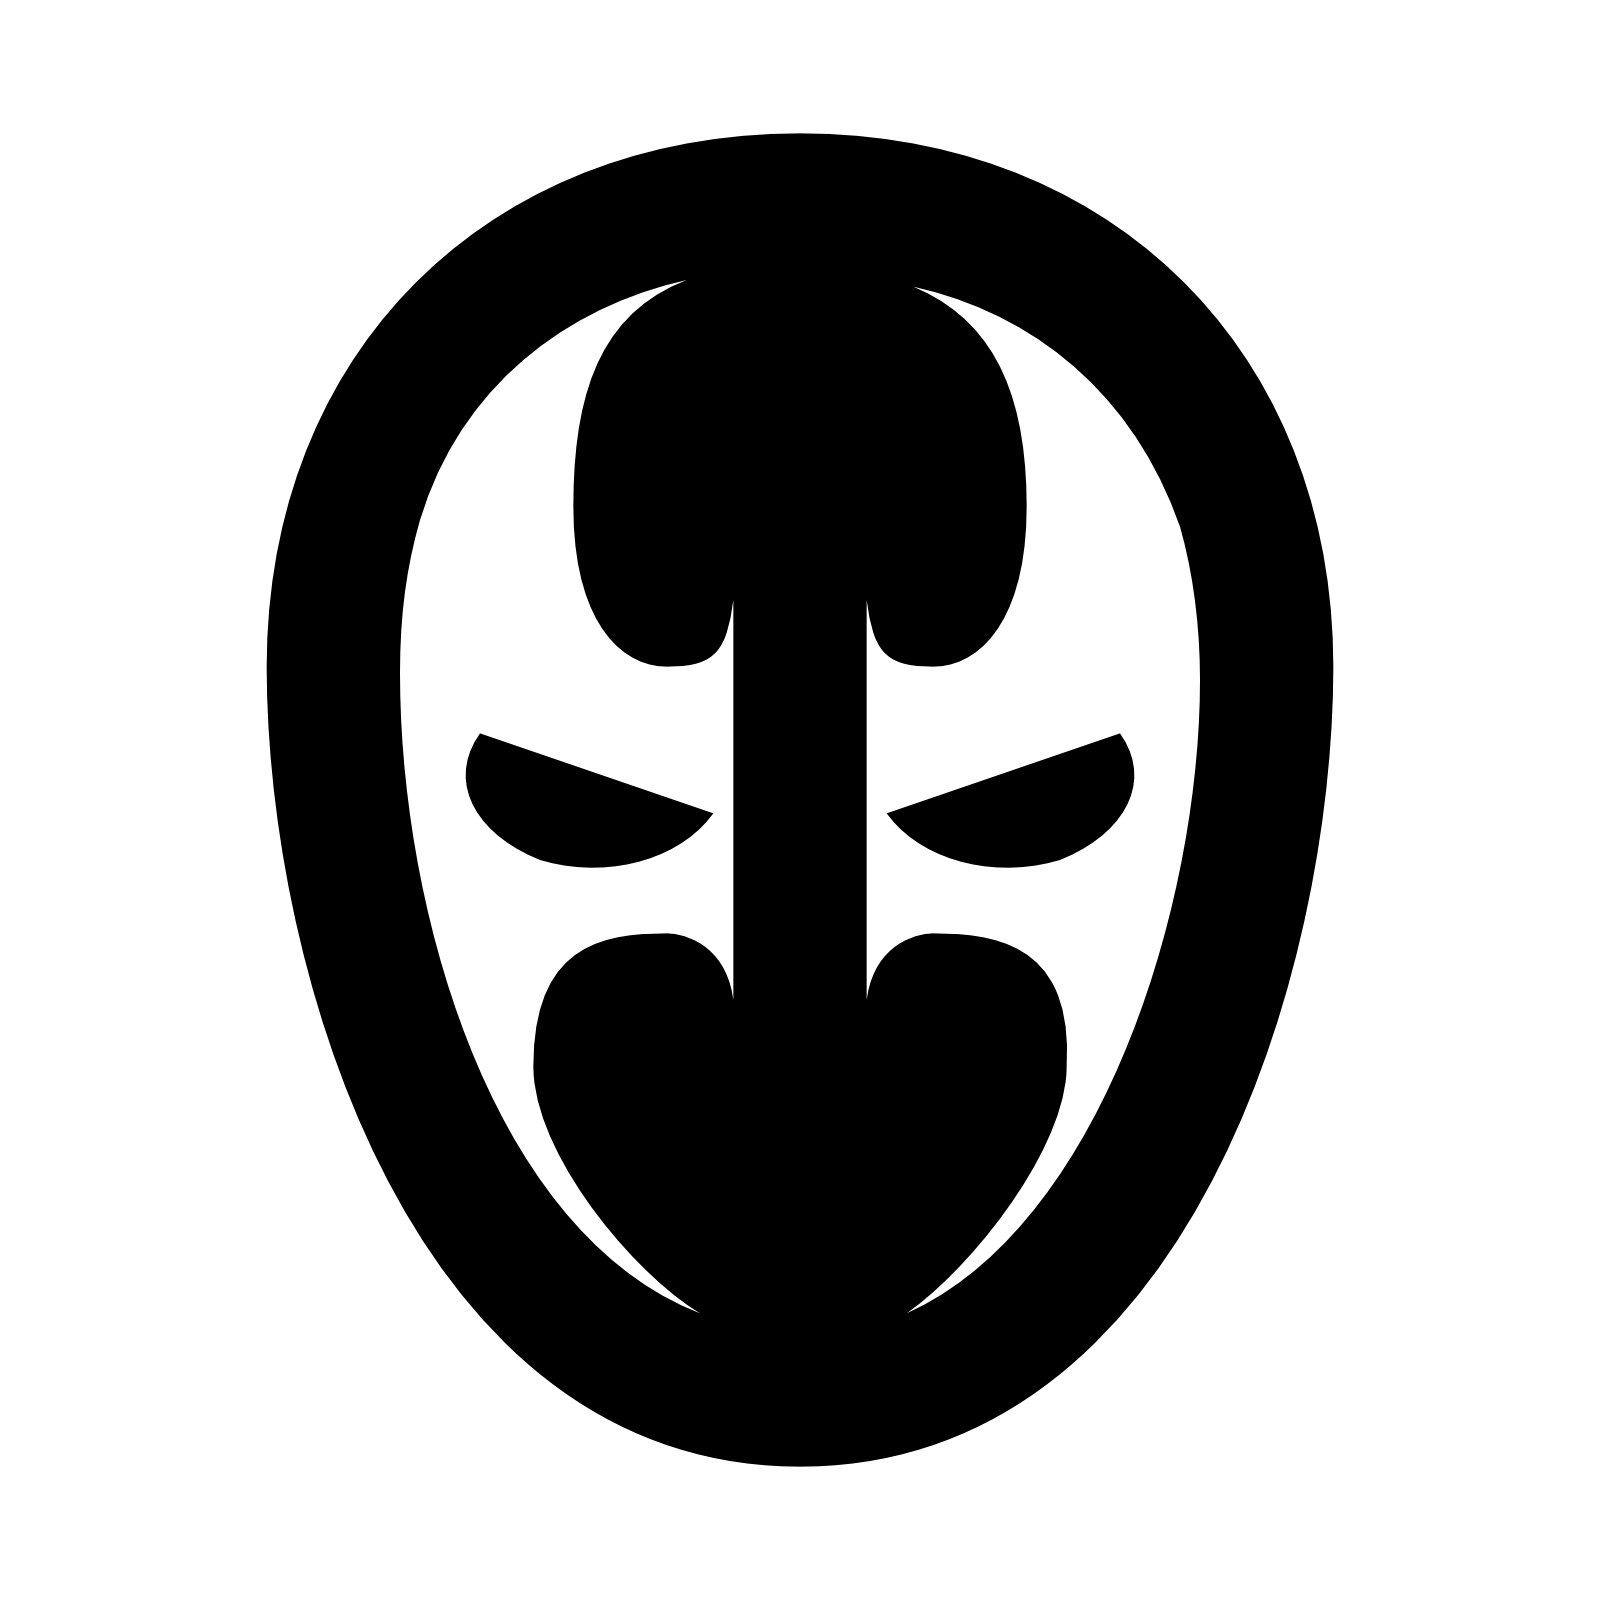 Vector Png Spawn image #28749